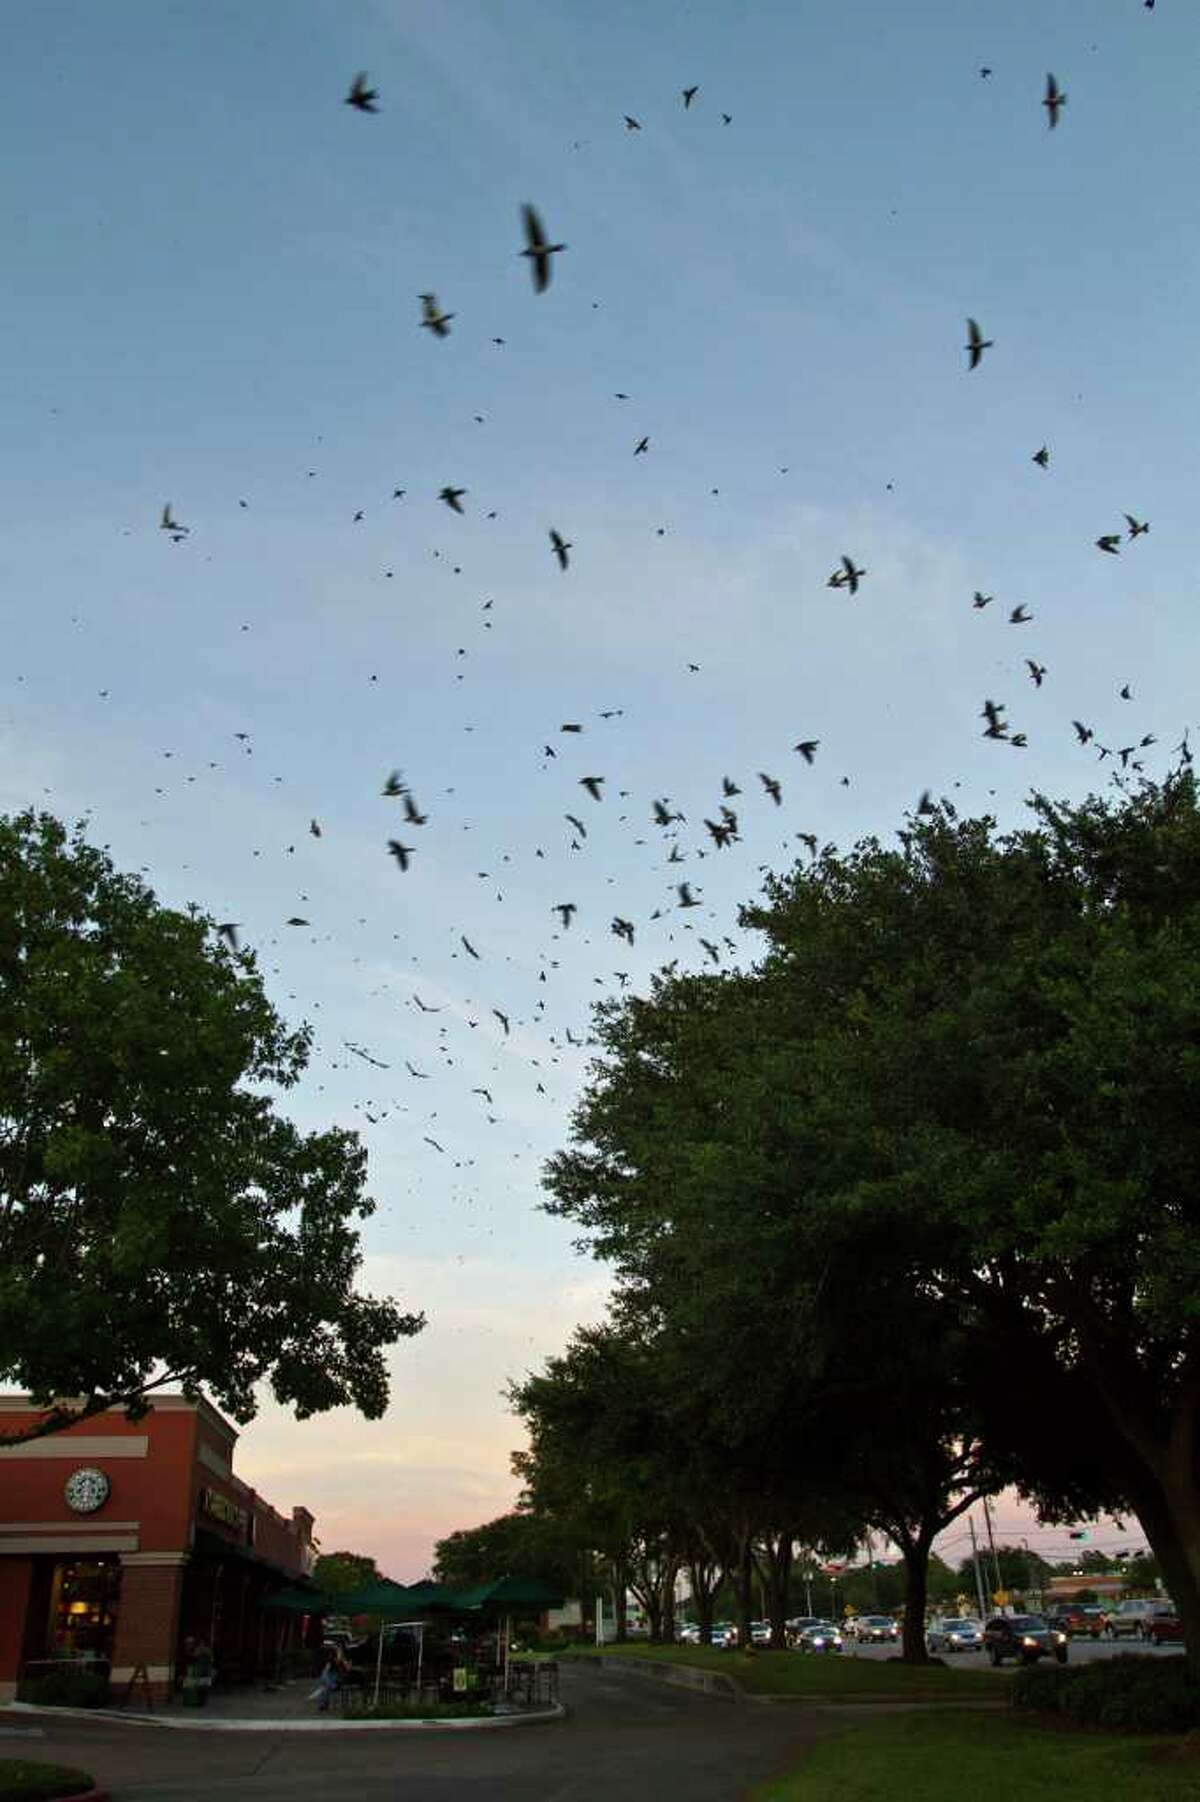 Purple martins gather in a communal roost across from Willowbrook Mall in north Houston. The birds gather in large flocks in preparation for their journey through Texas to their winter home in South America. Photo Credit: Kathy Adams Clark Restricted use.